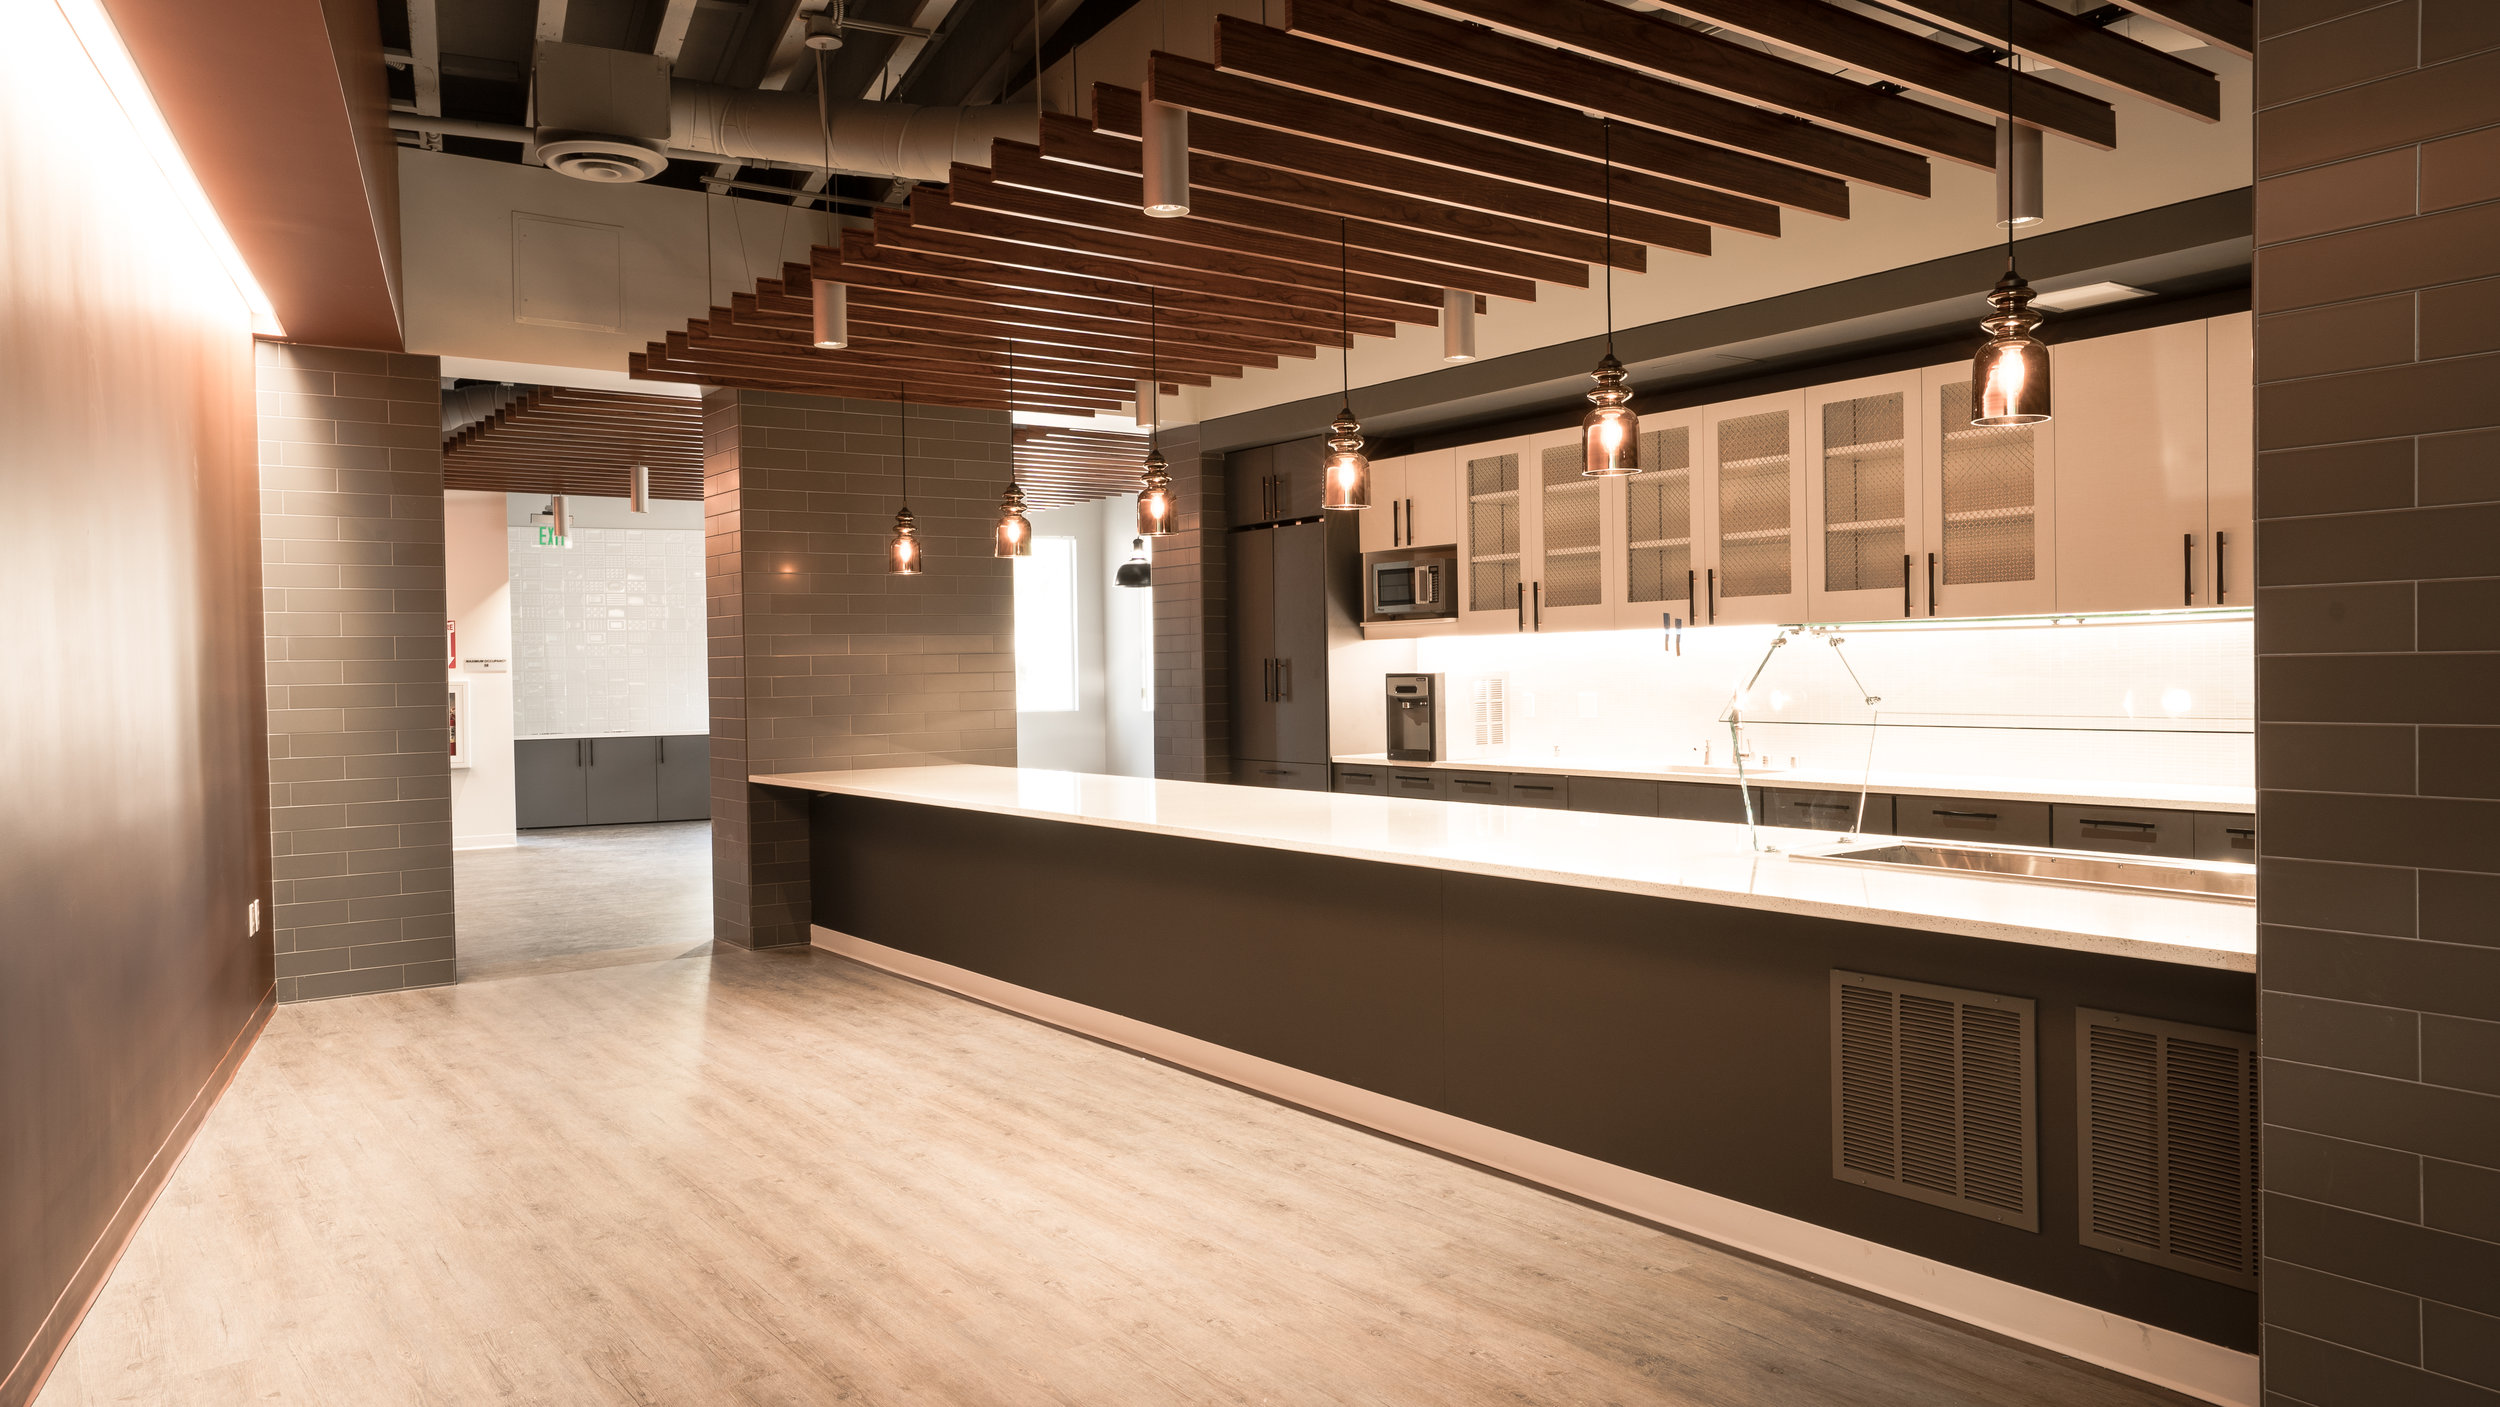 Welk Resorts Break Room & Kitchen Renovation